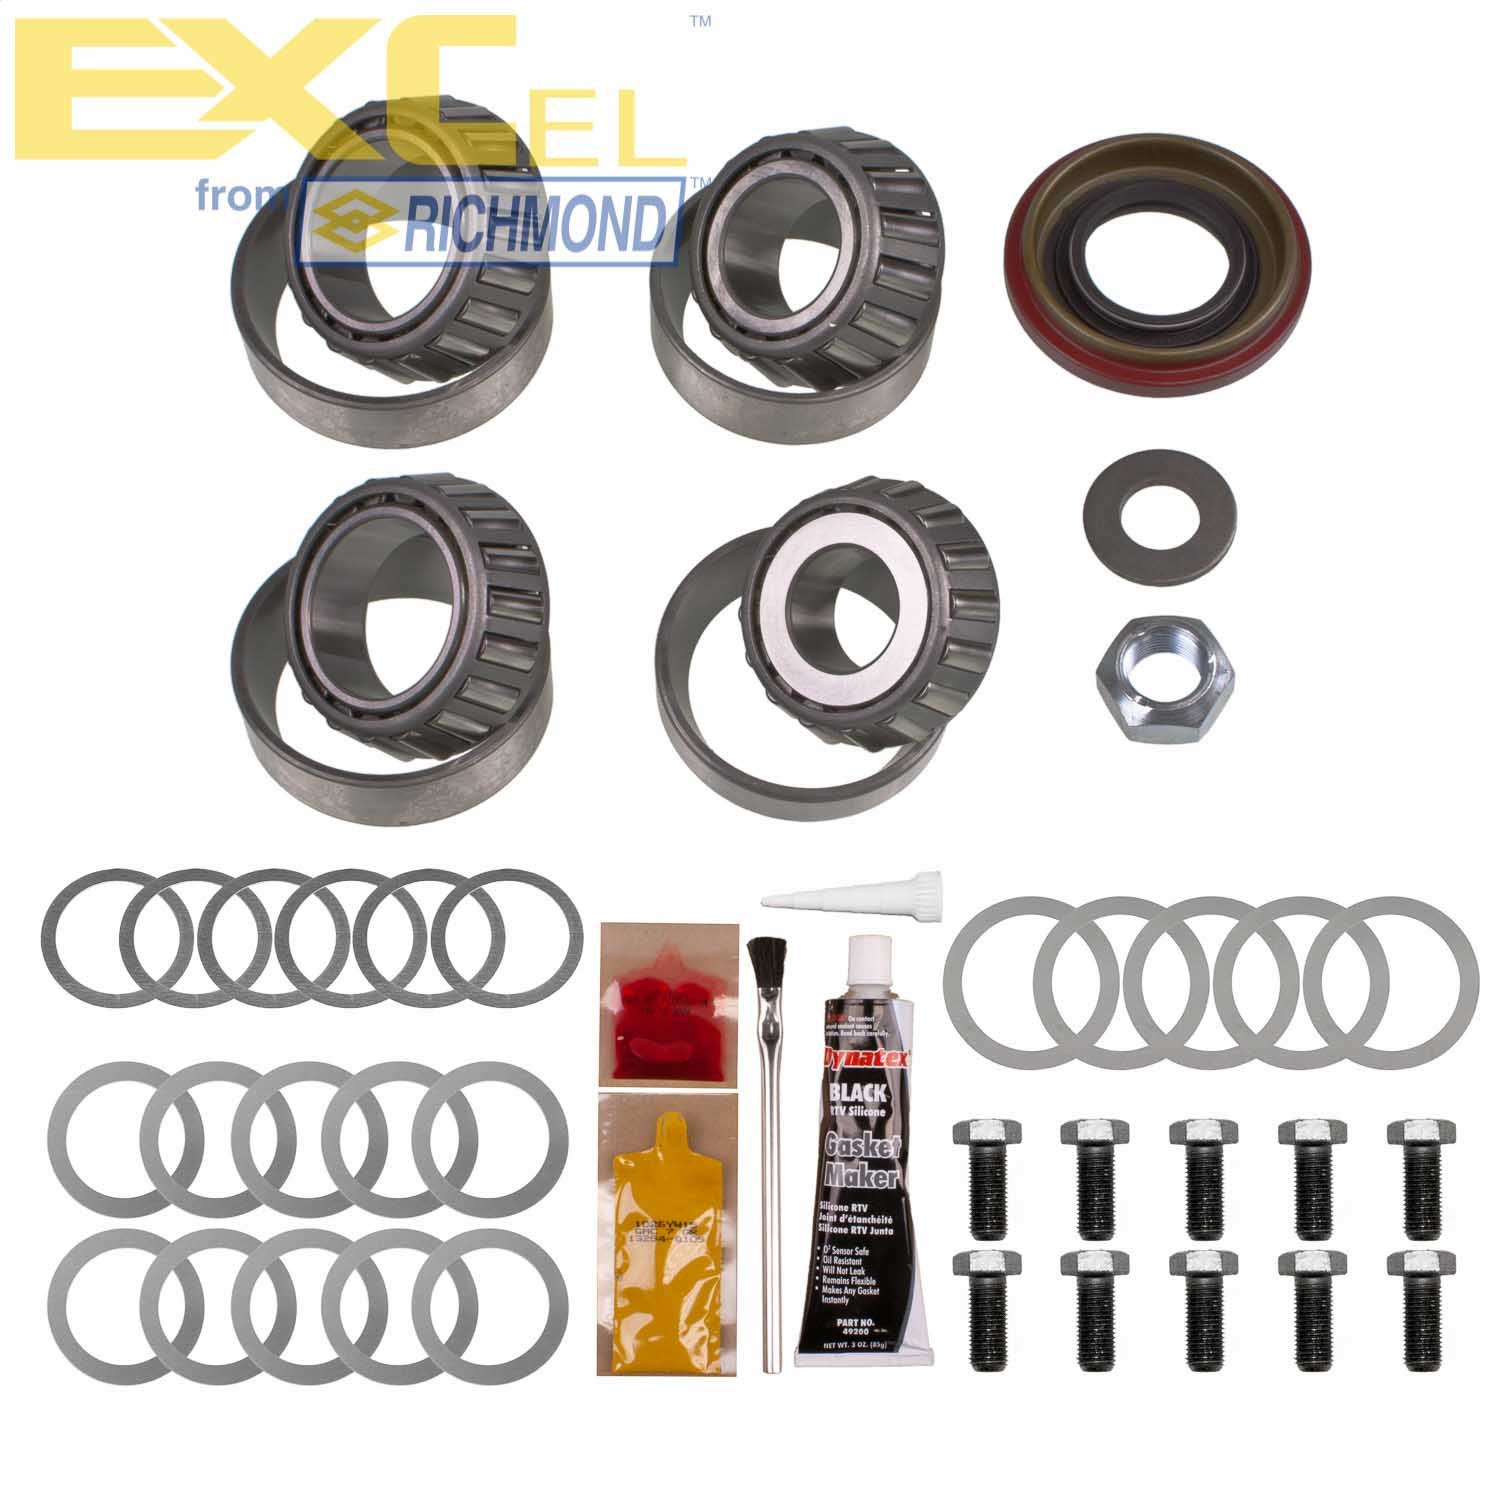 EXCEL from Richmond XL-1033-1 Full Differential Bearing Kit